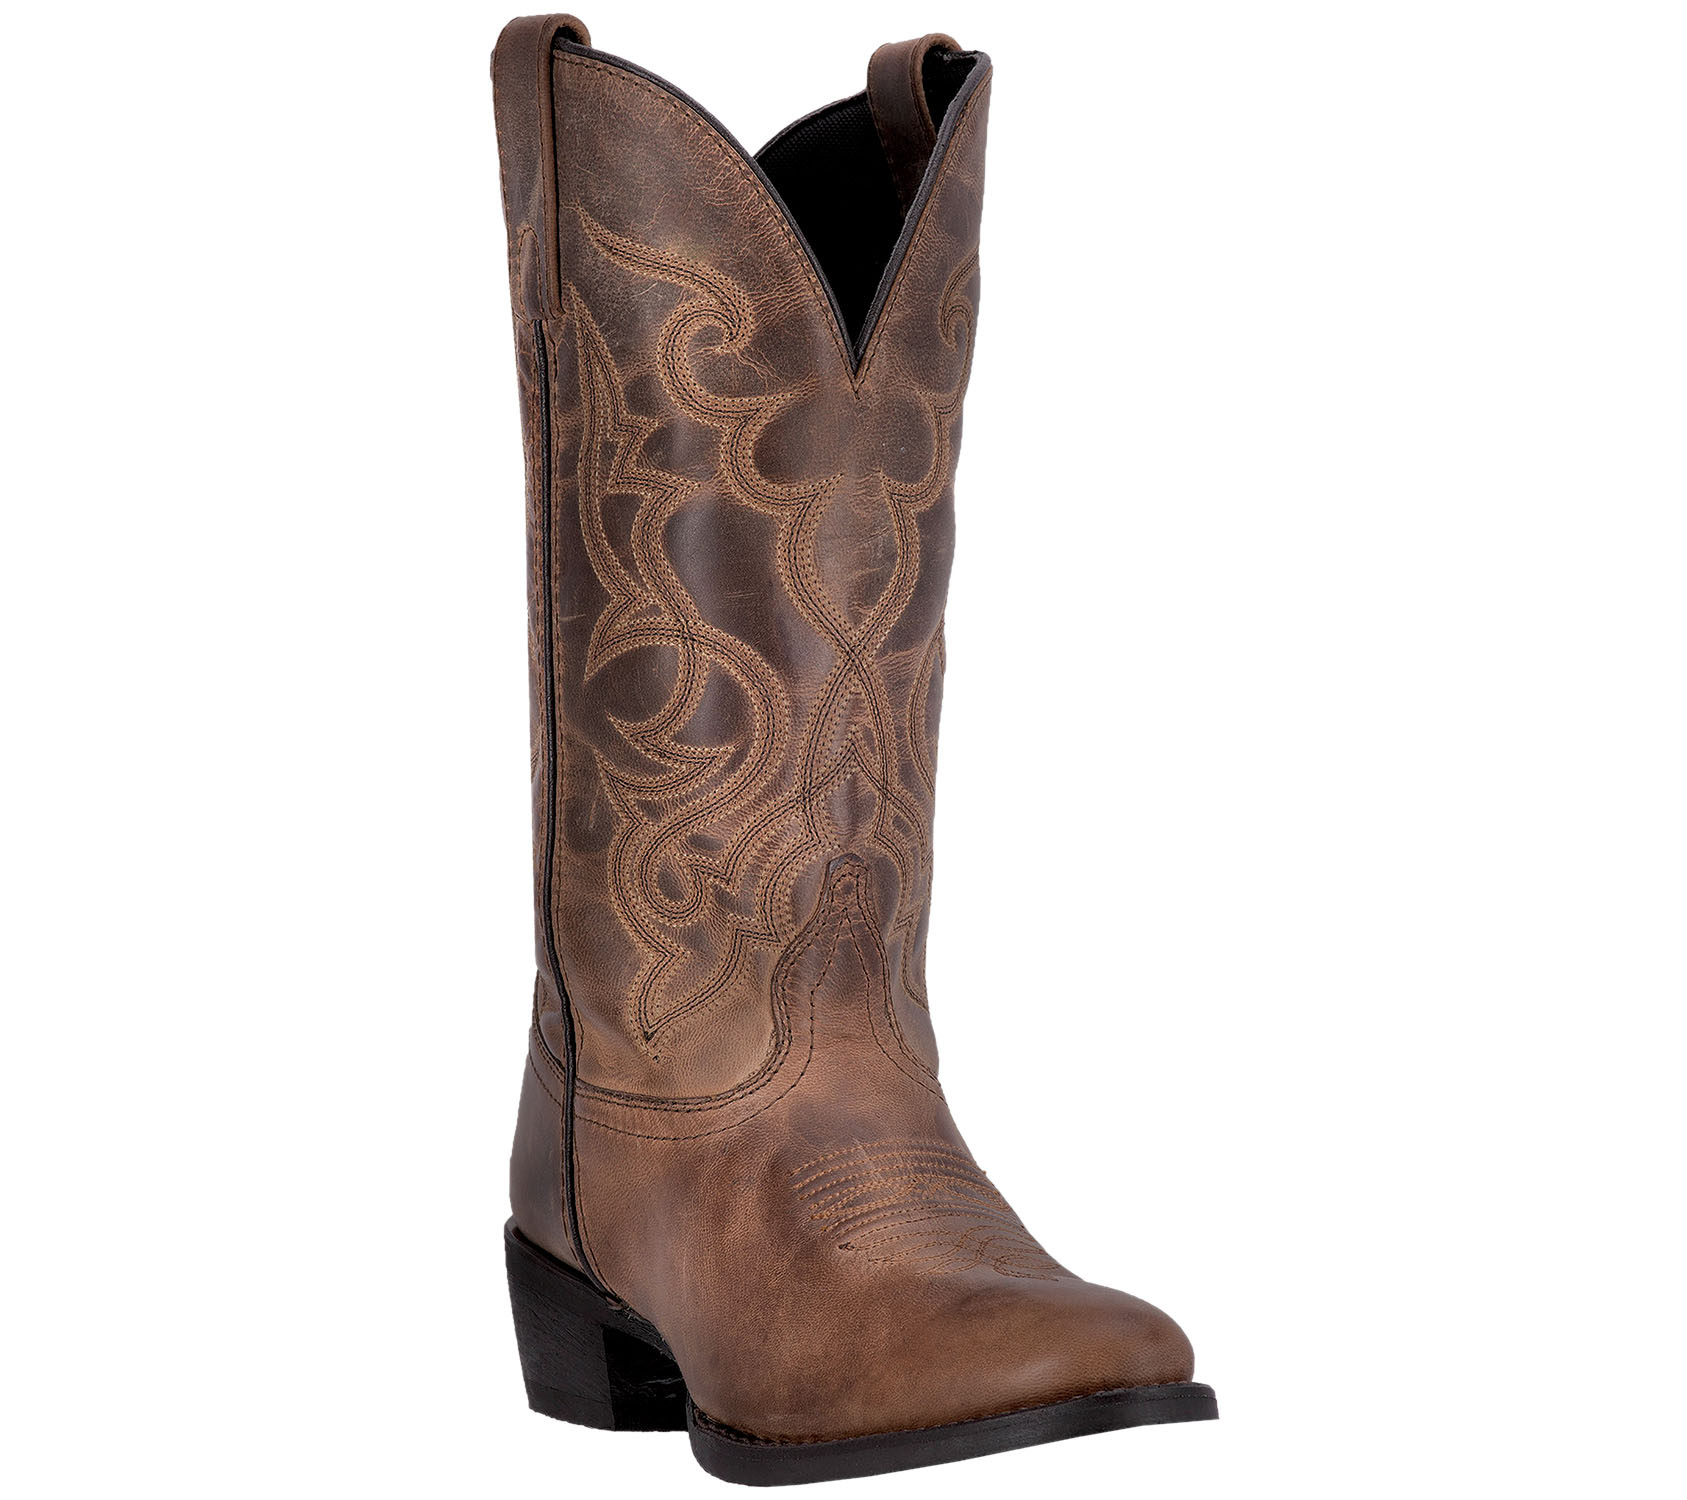 Laredo Leather Western Boots - Maddie - Page 1 — QVC.com